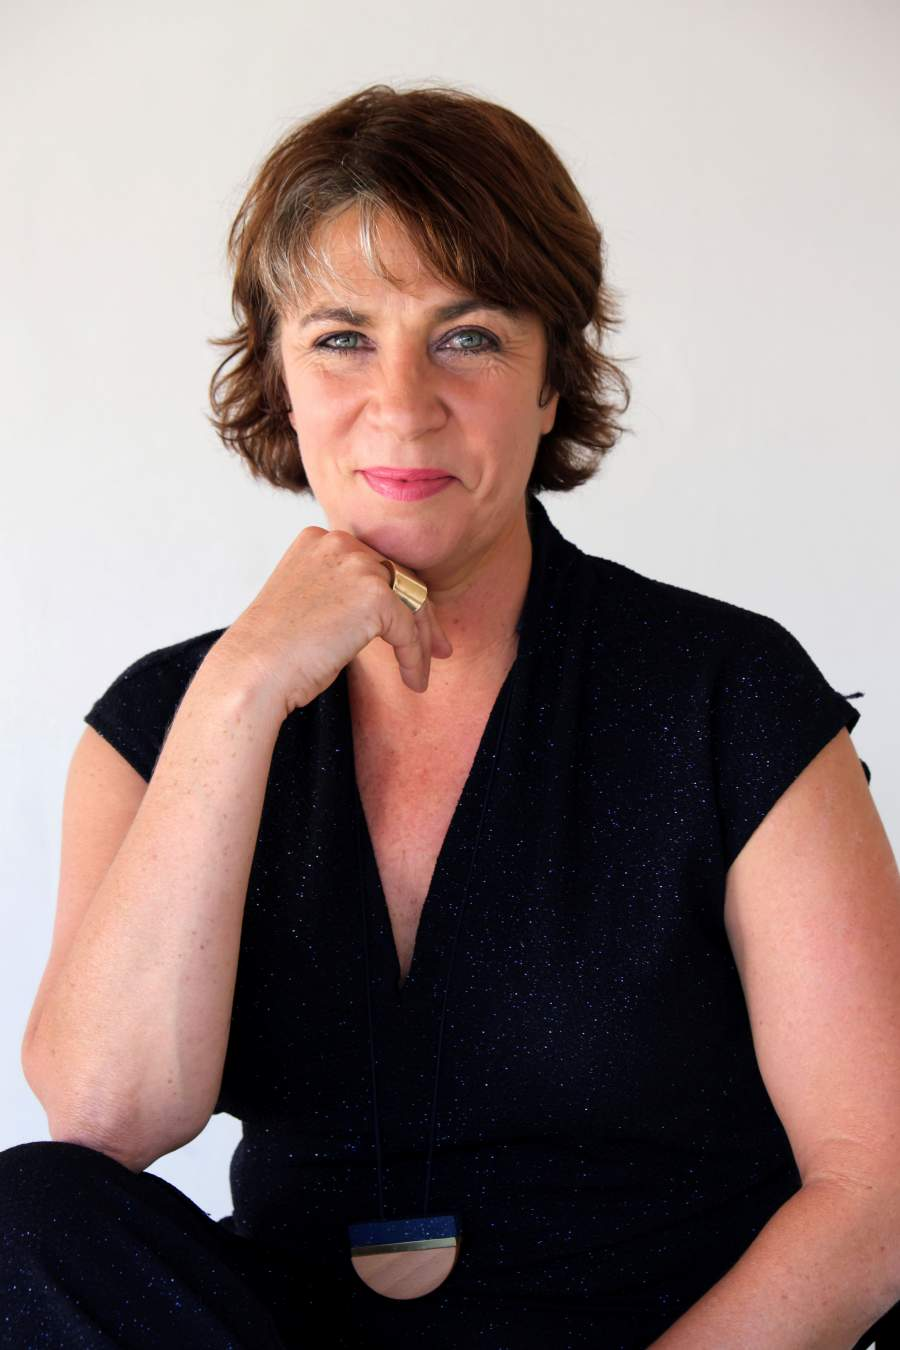 Sabine Lehmann, renowned local attractions industry leader and executive director of AAVEA, is thrilled to once again host Africa's only attractions conference, in partnership with South African Tourism.